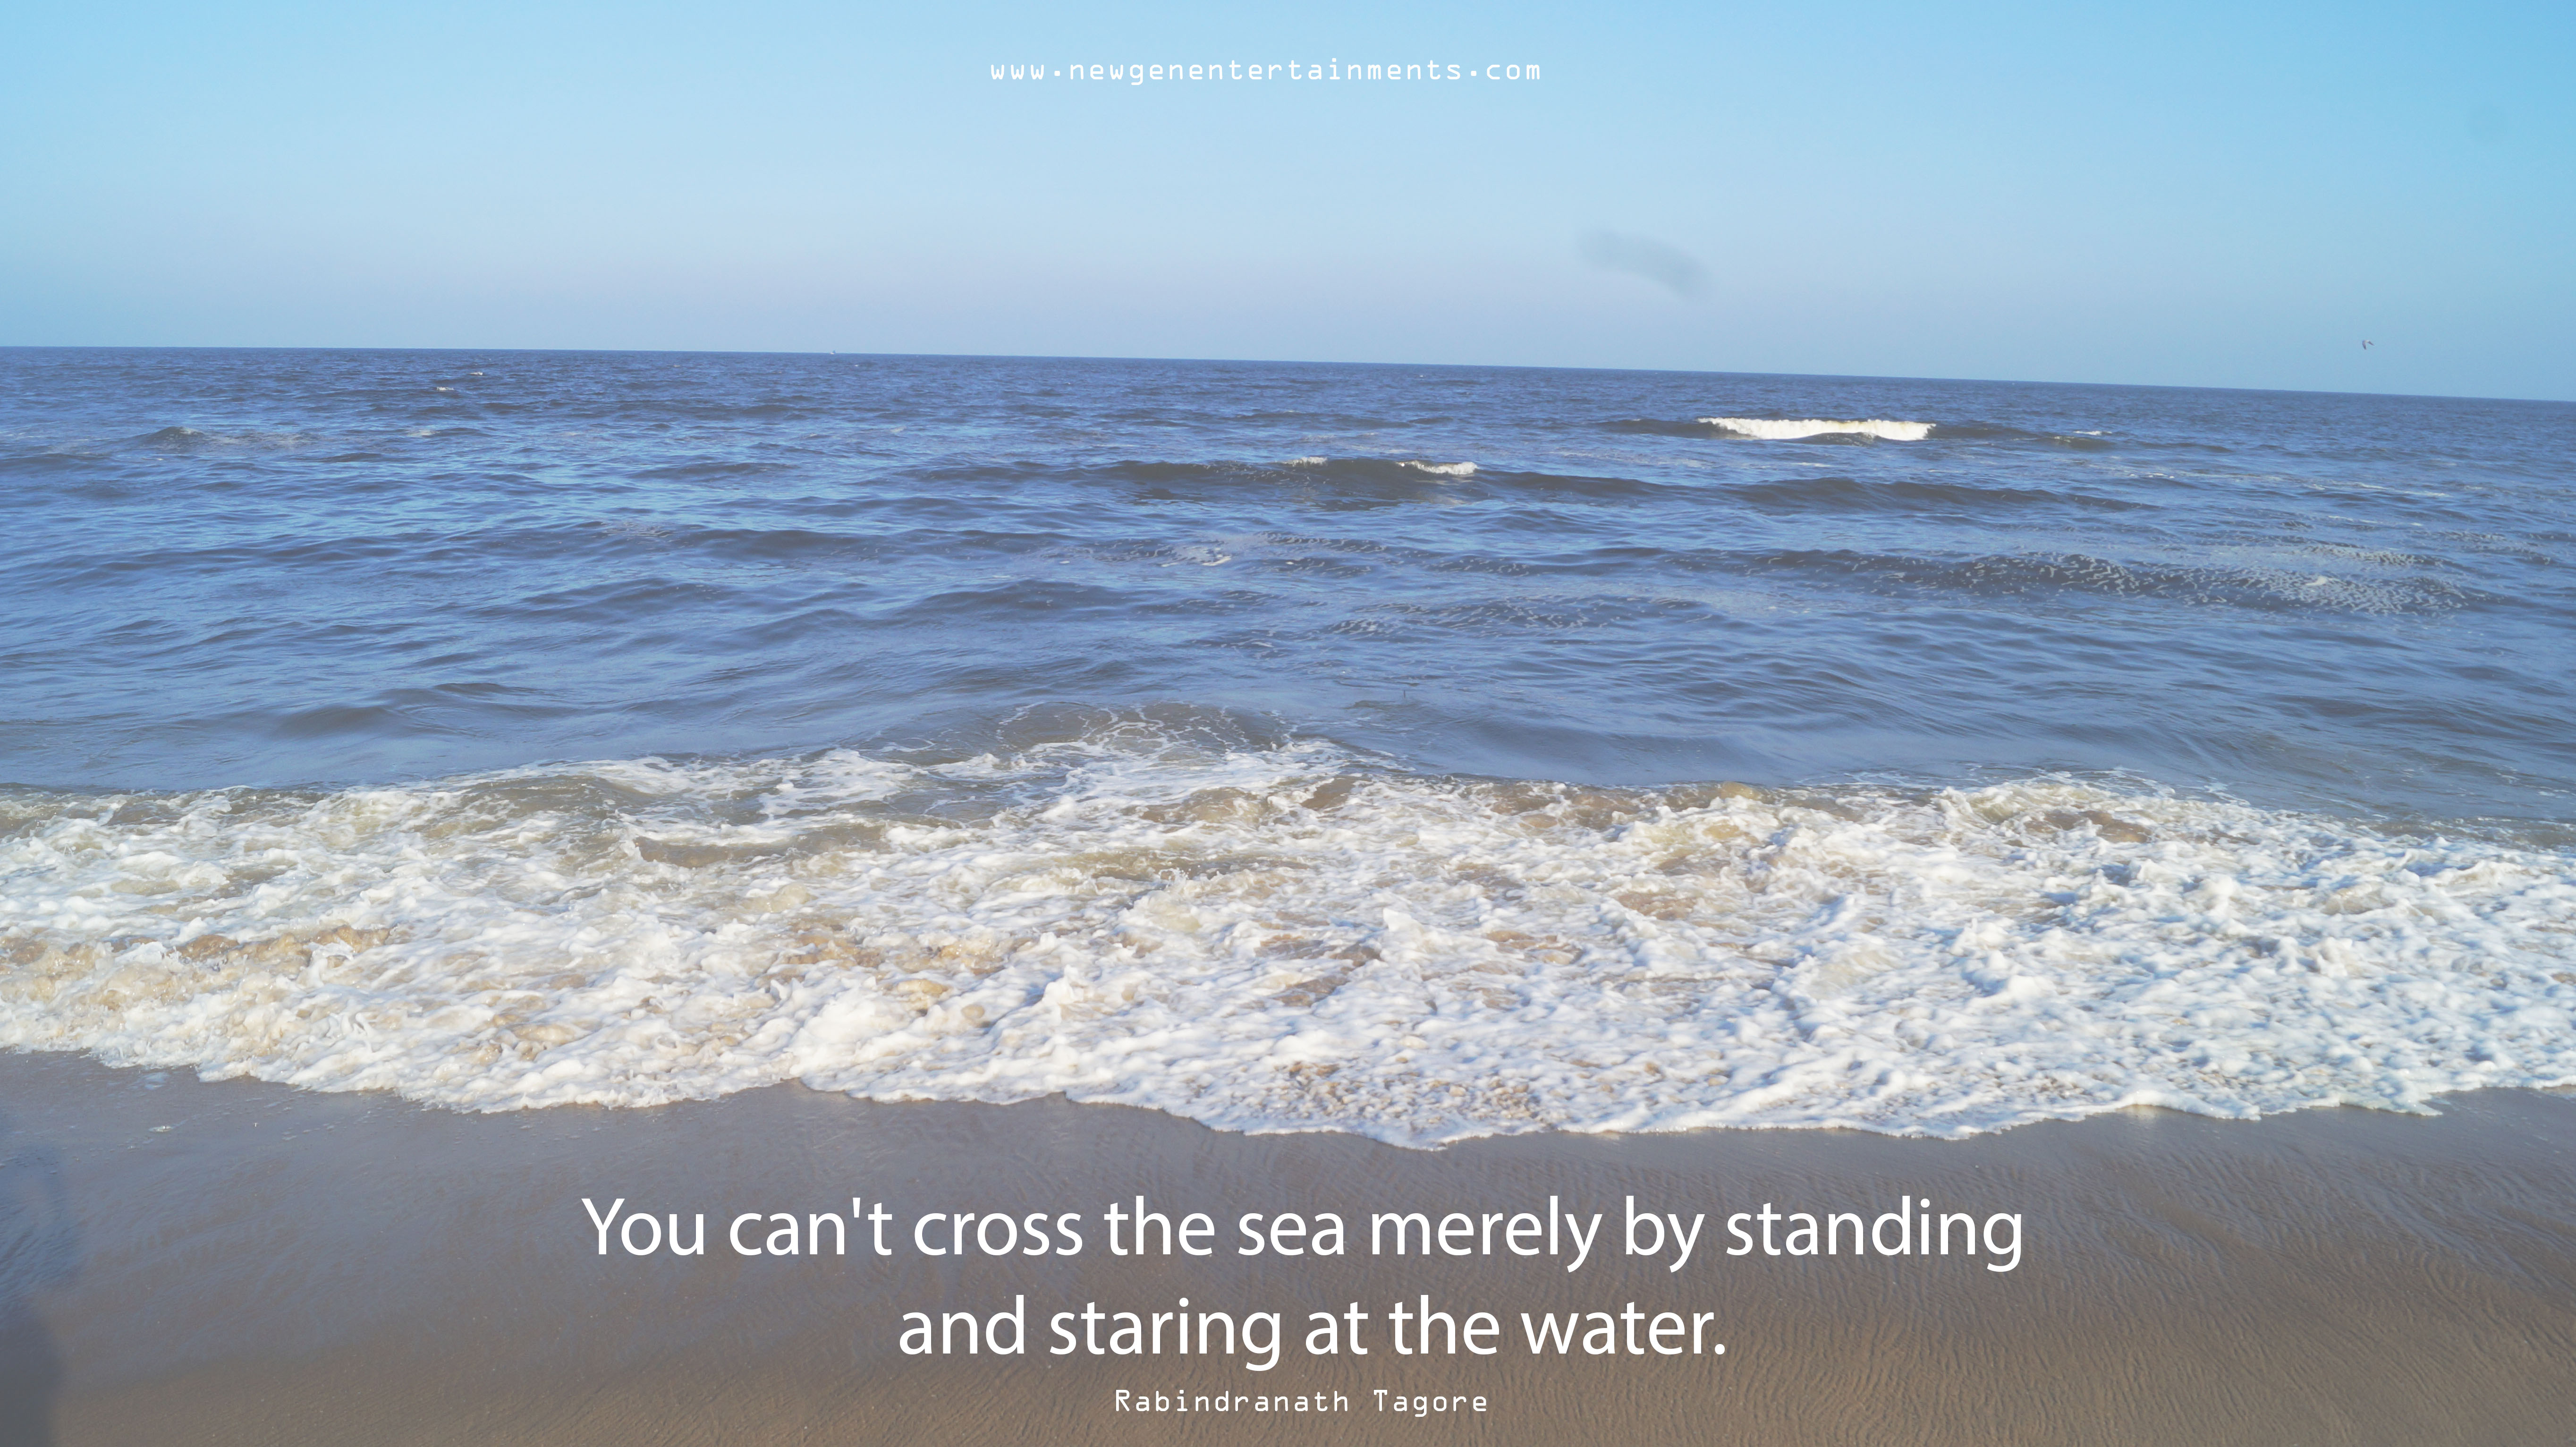 You can't cross the sea merely by standing and staring at the water